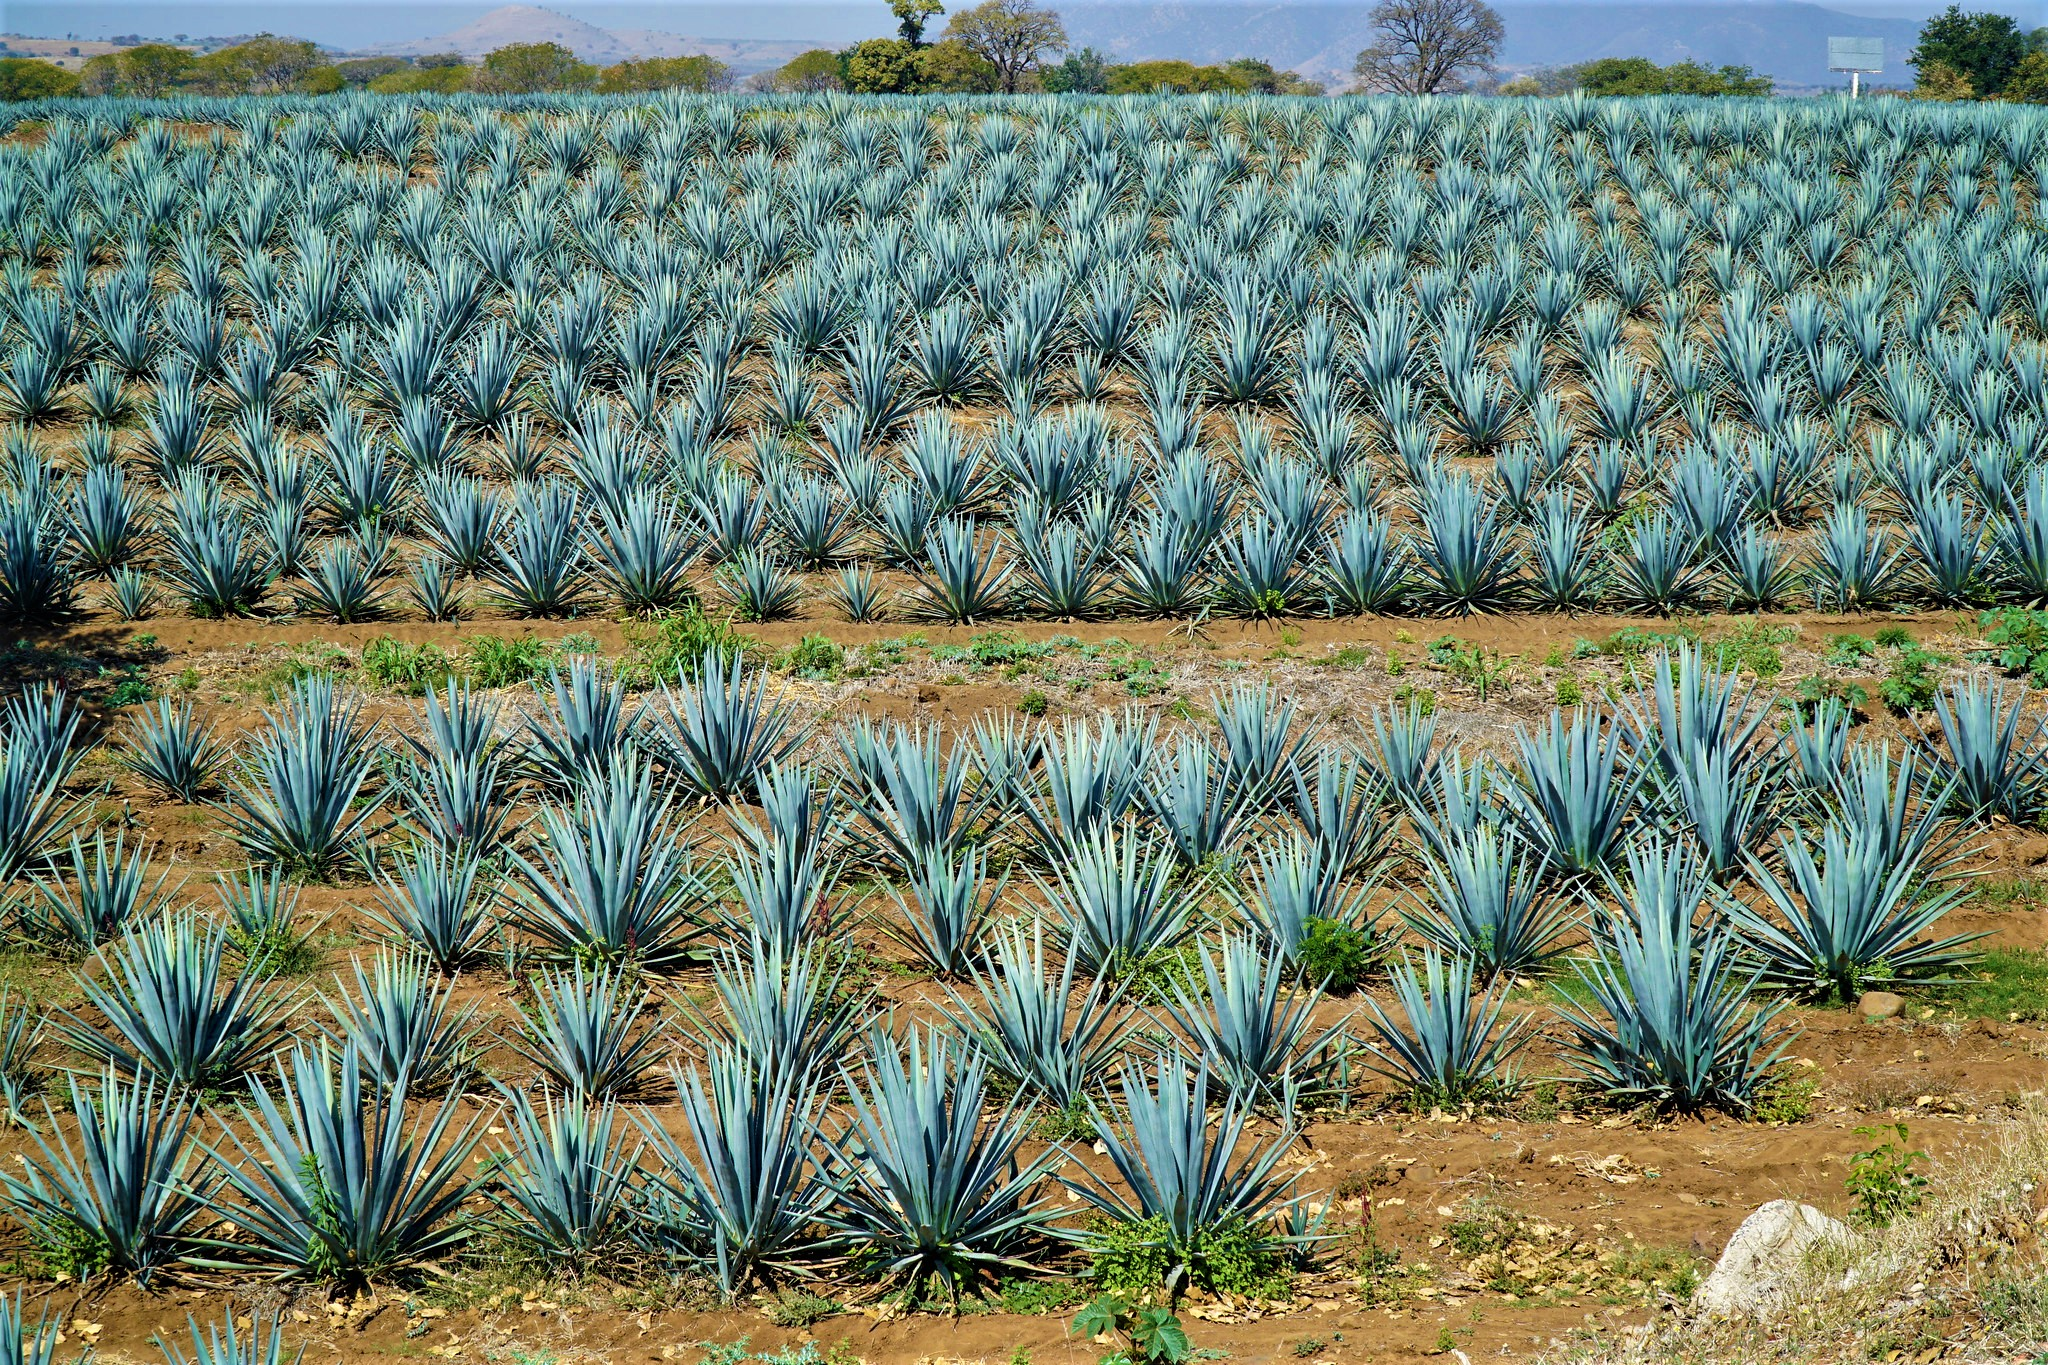 We Drink Tequila in Tequila (Mexico)